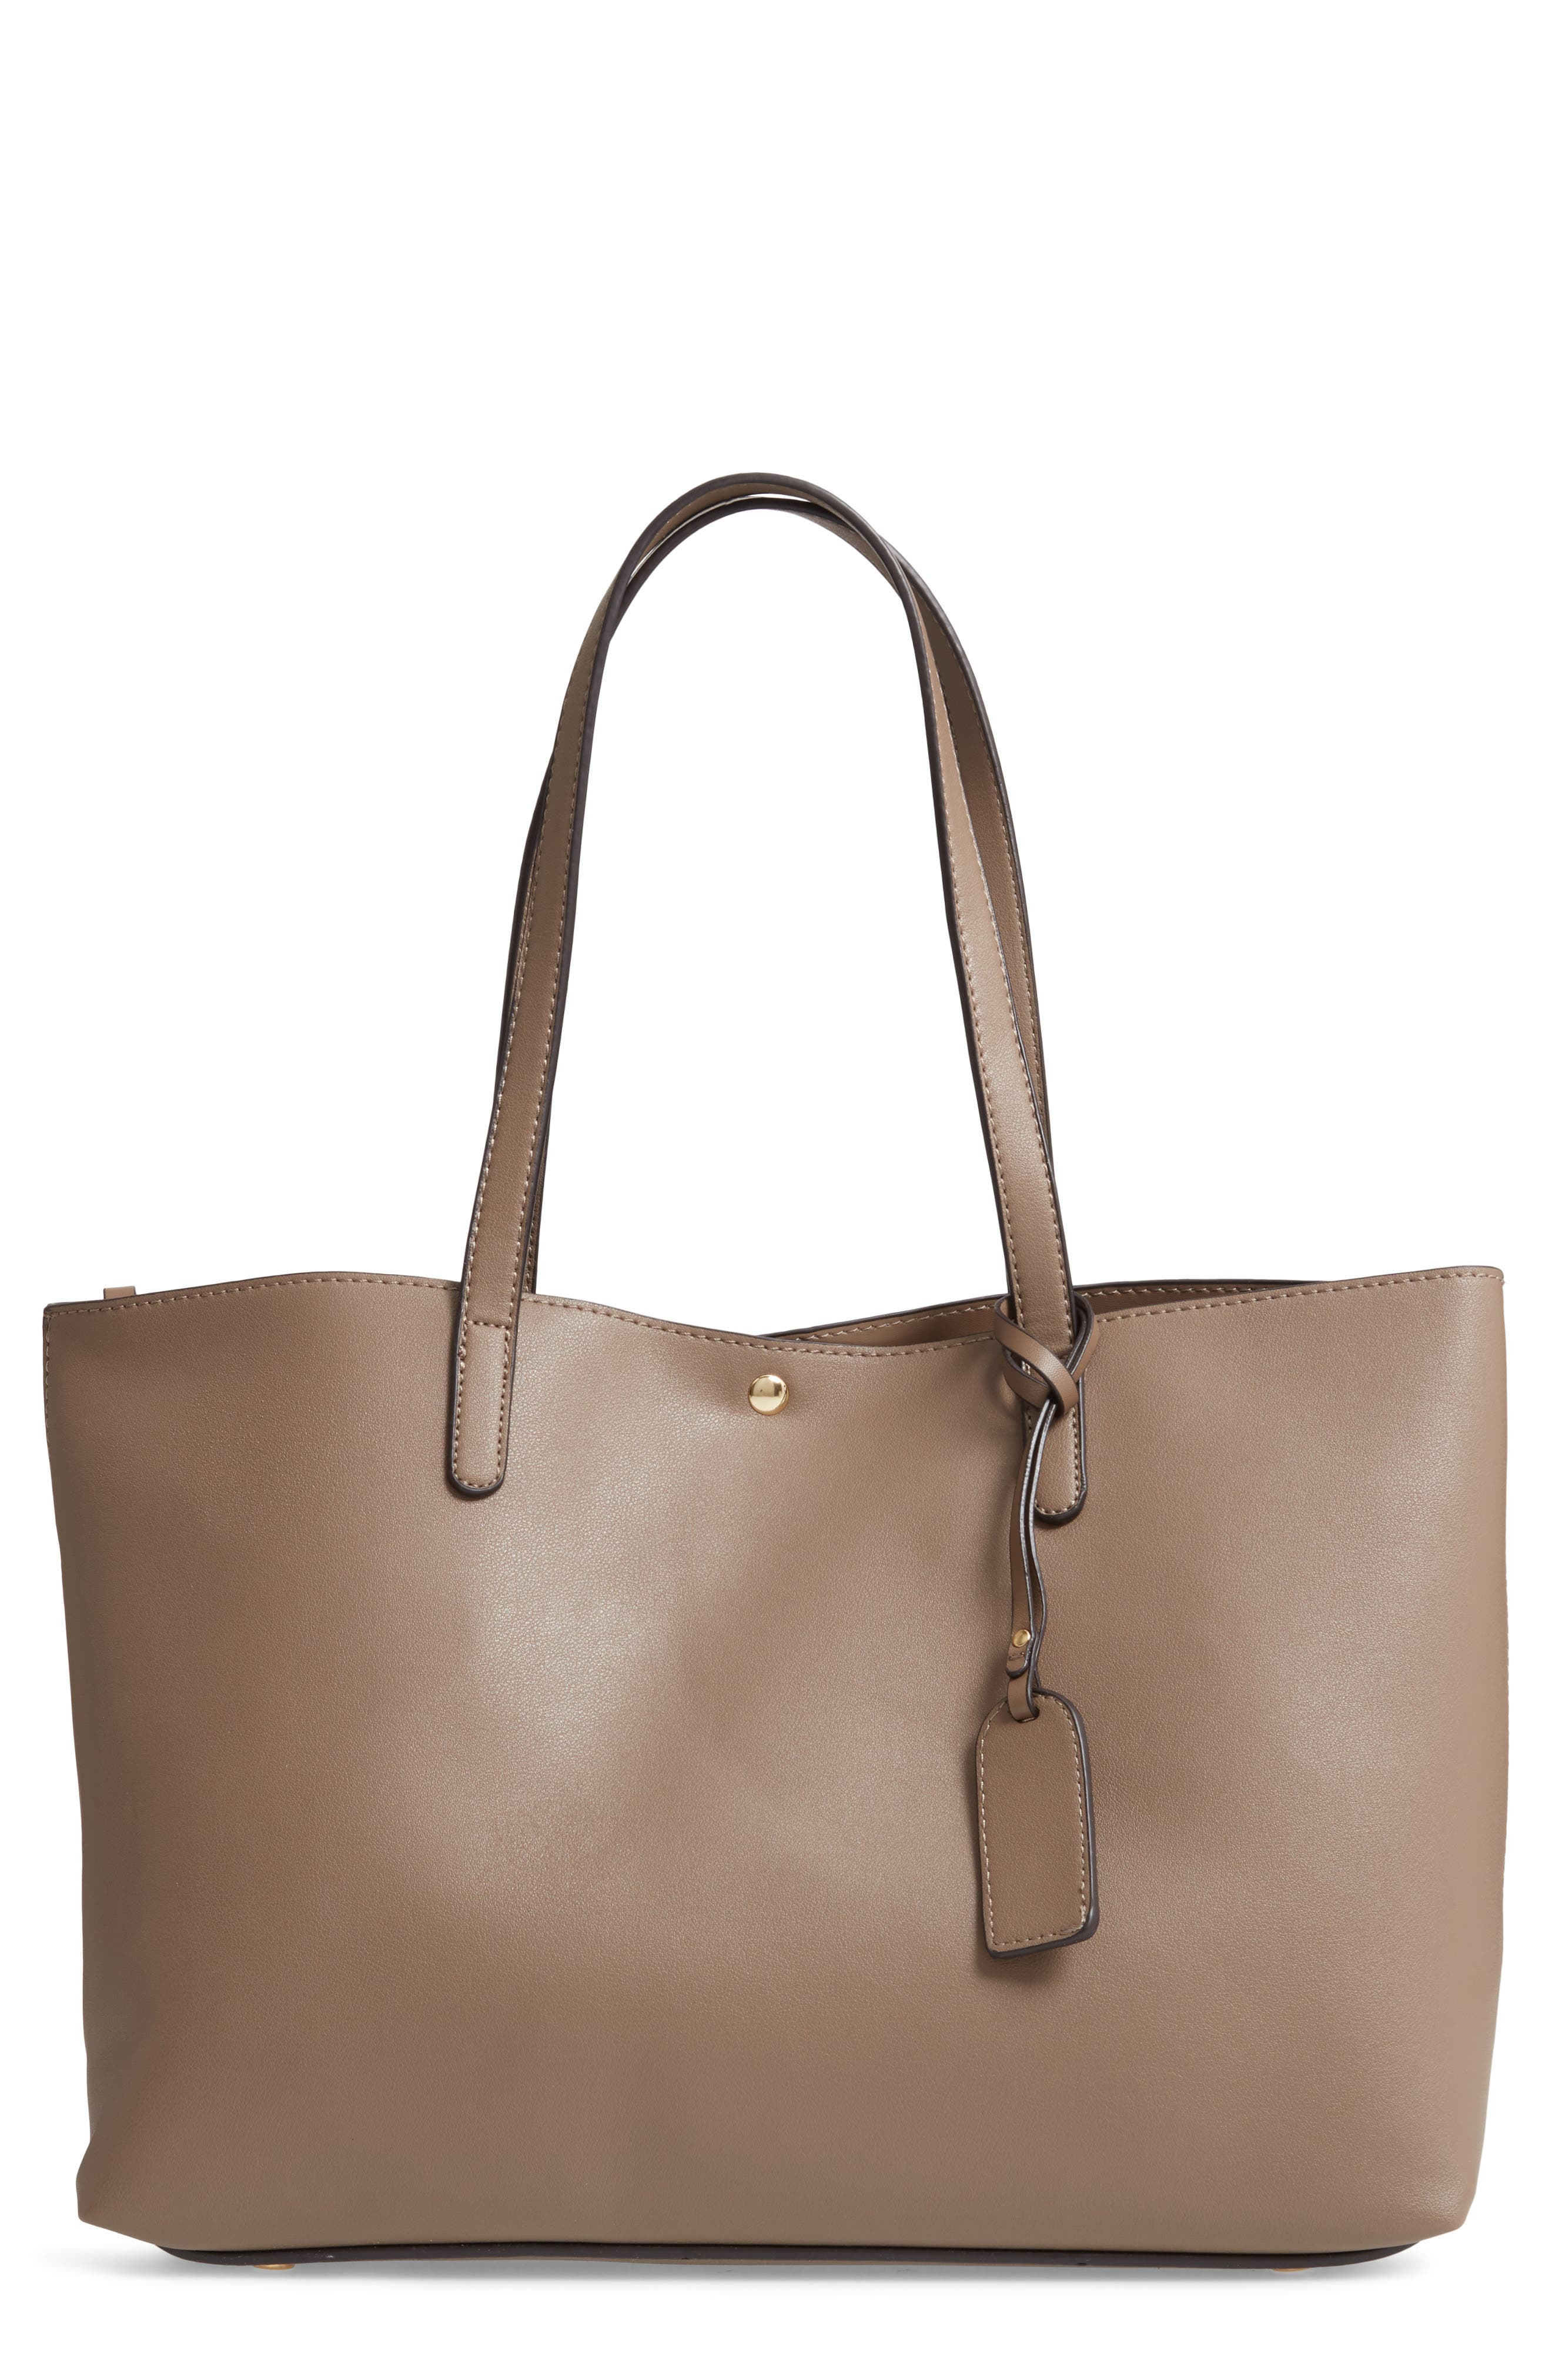 Tote Bags for Women: Leather, Coated Canvas,